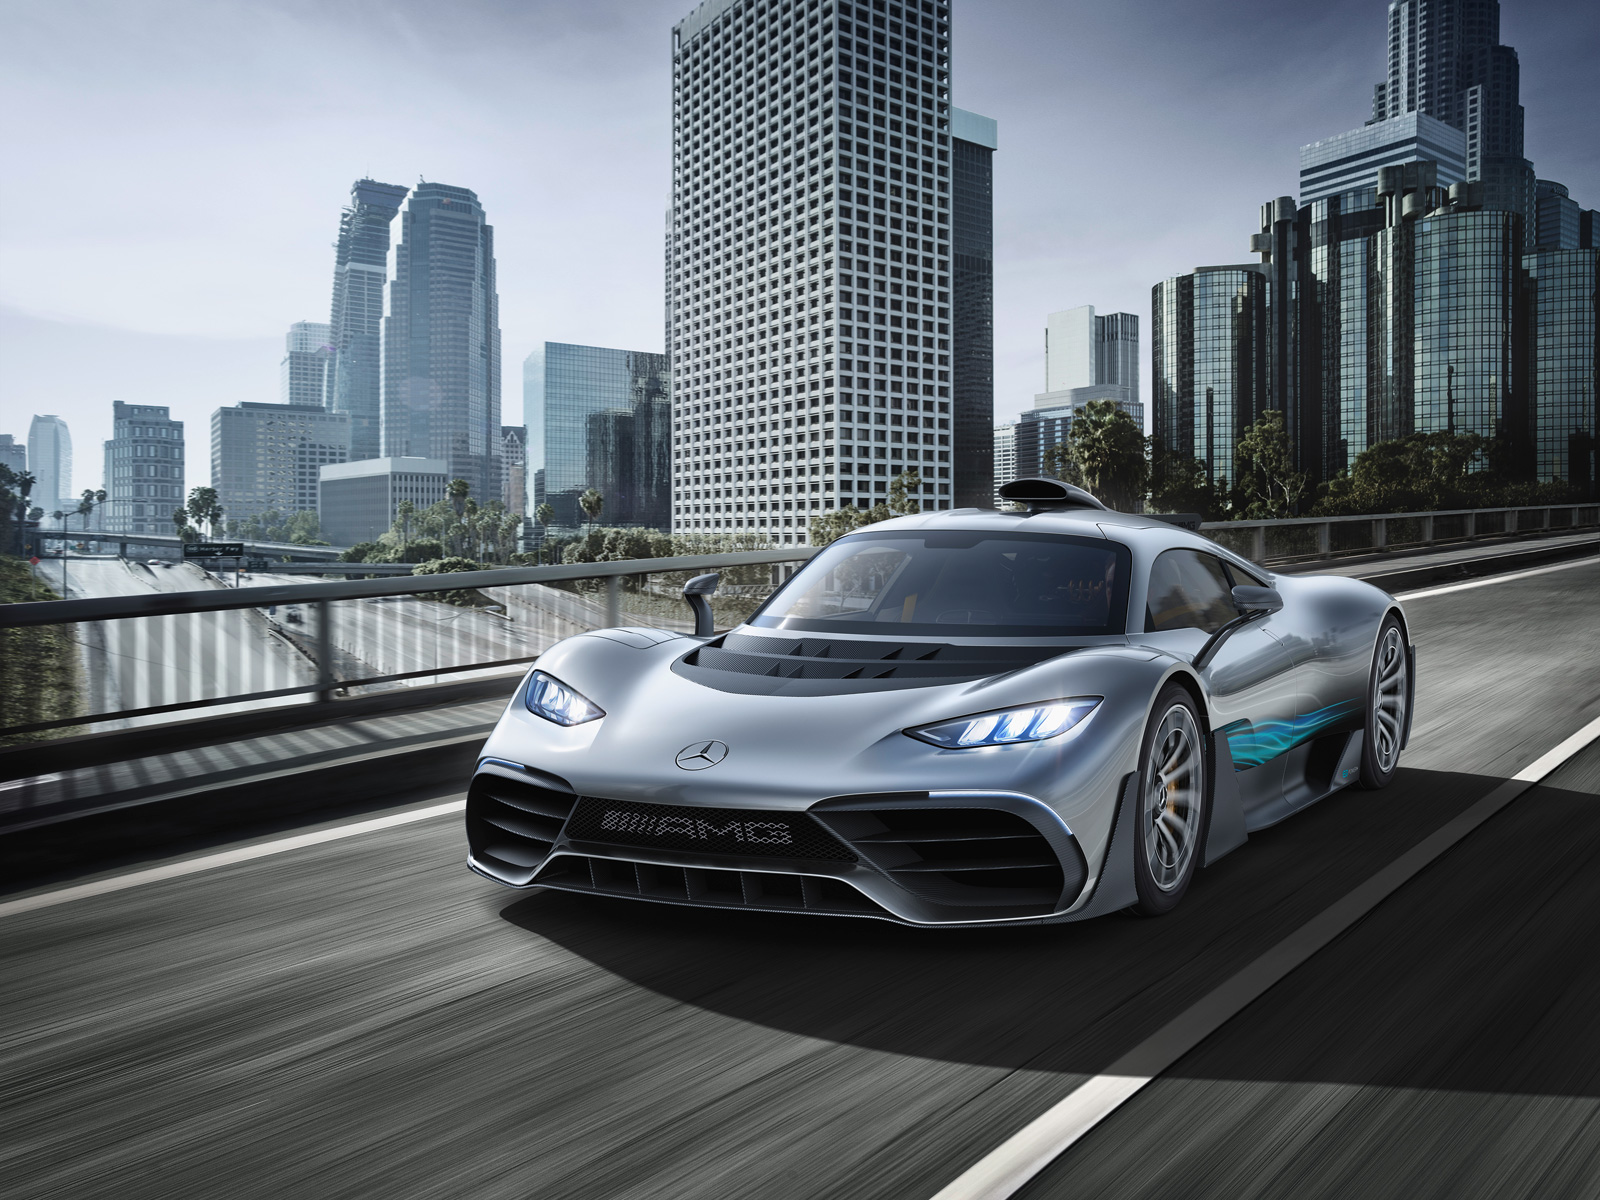 Project One S Hybrid System To Appear In Other Mercedes Cars